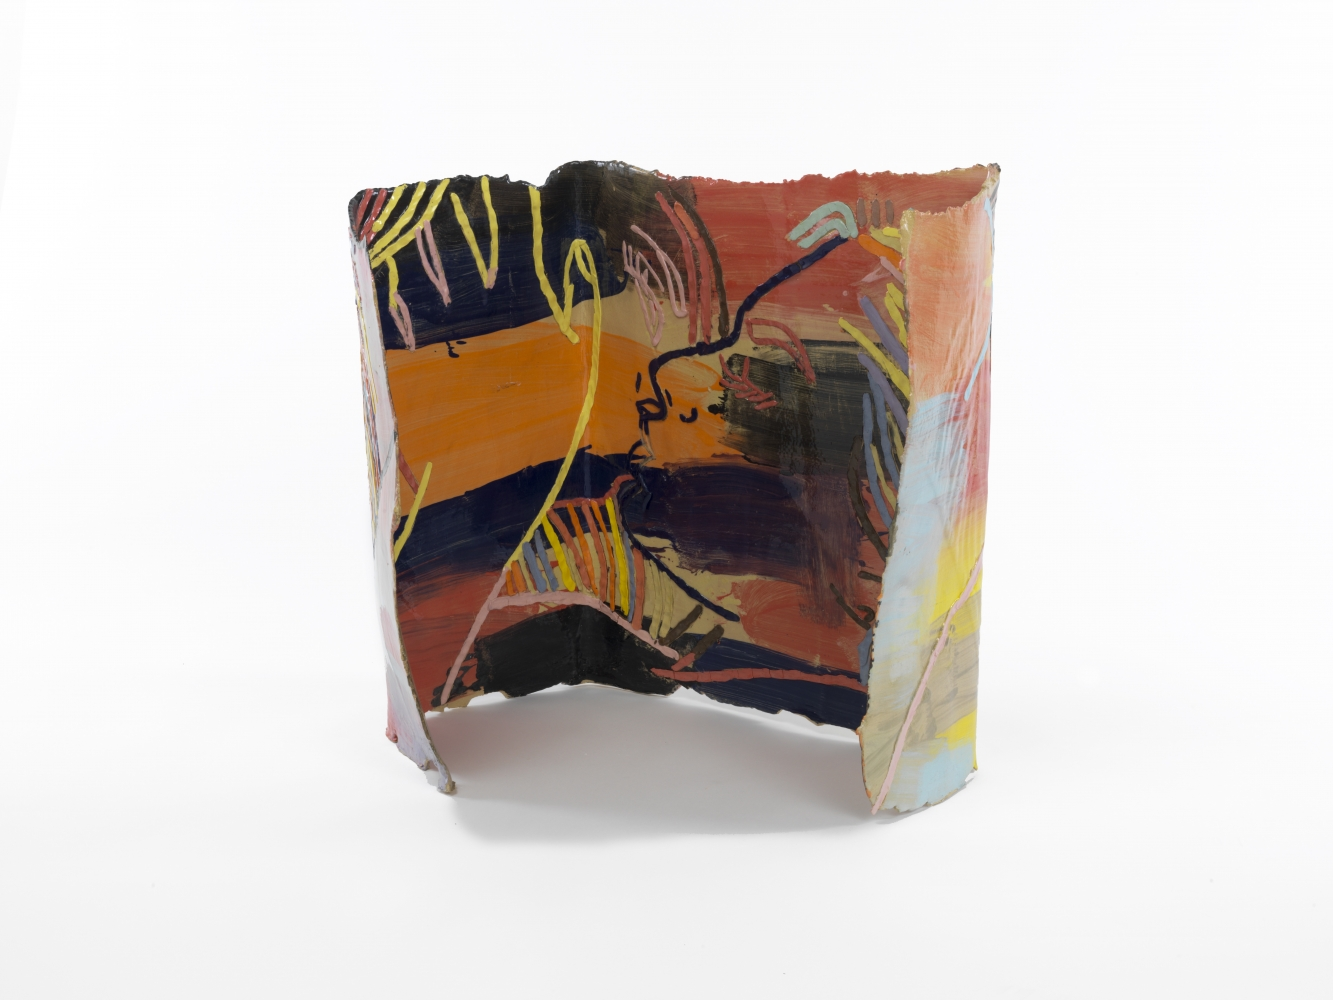 Ghada Amer (b. 1963) Box in Color, 2015 Glazed stoneware with porcelain inlay and porcelain slip 23.5 x 20 x 16 inches 59.7 x 50.8 x 40.6 cm